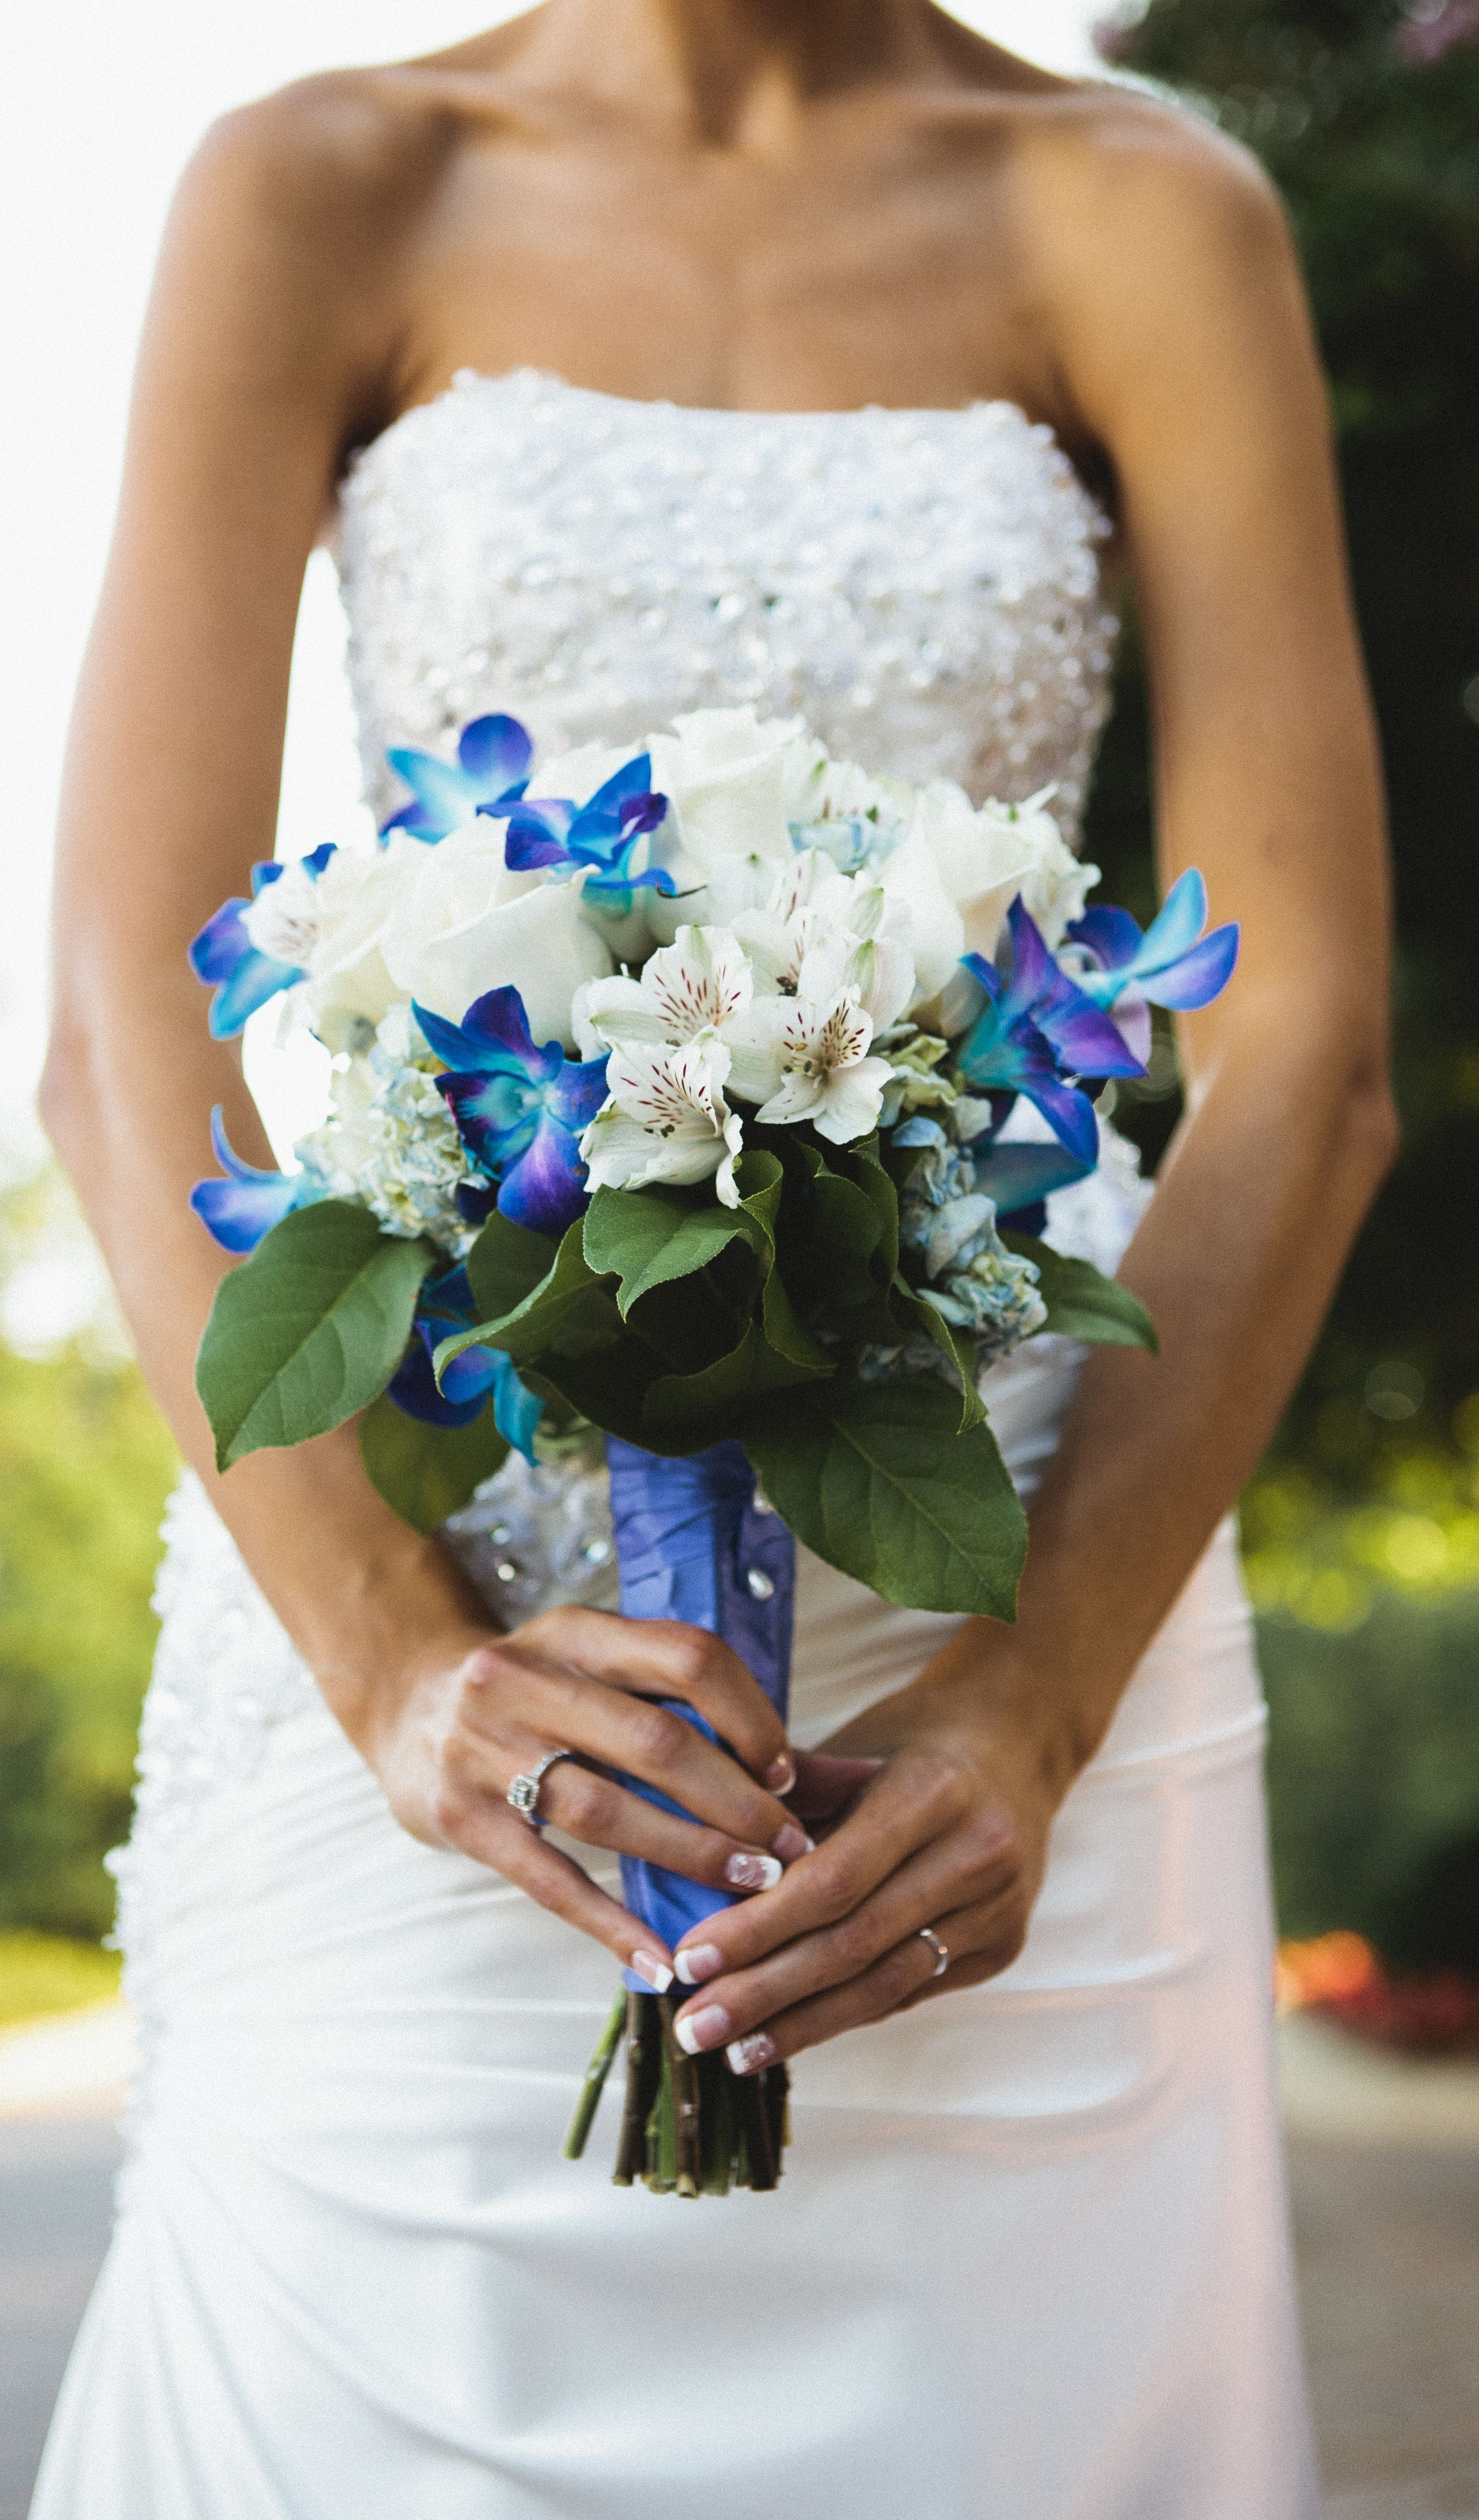 Pin By Bukietlove On Things From Our Wedding 3 Blue Wedding Bouquet Wedding Bouquets Flower Bouquet Wedding